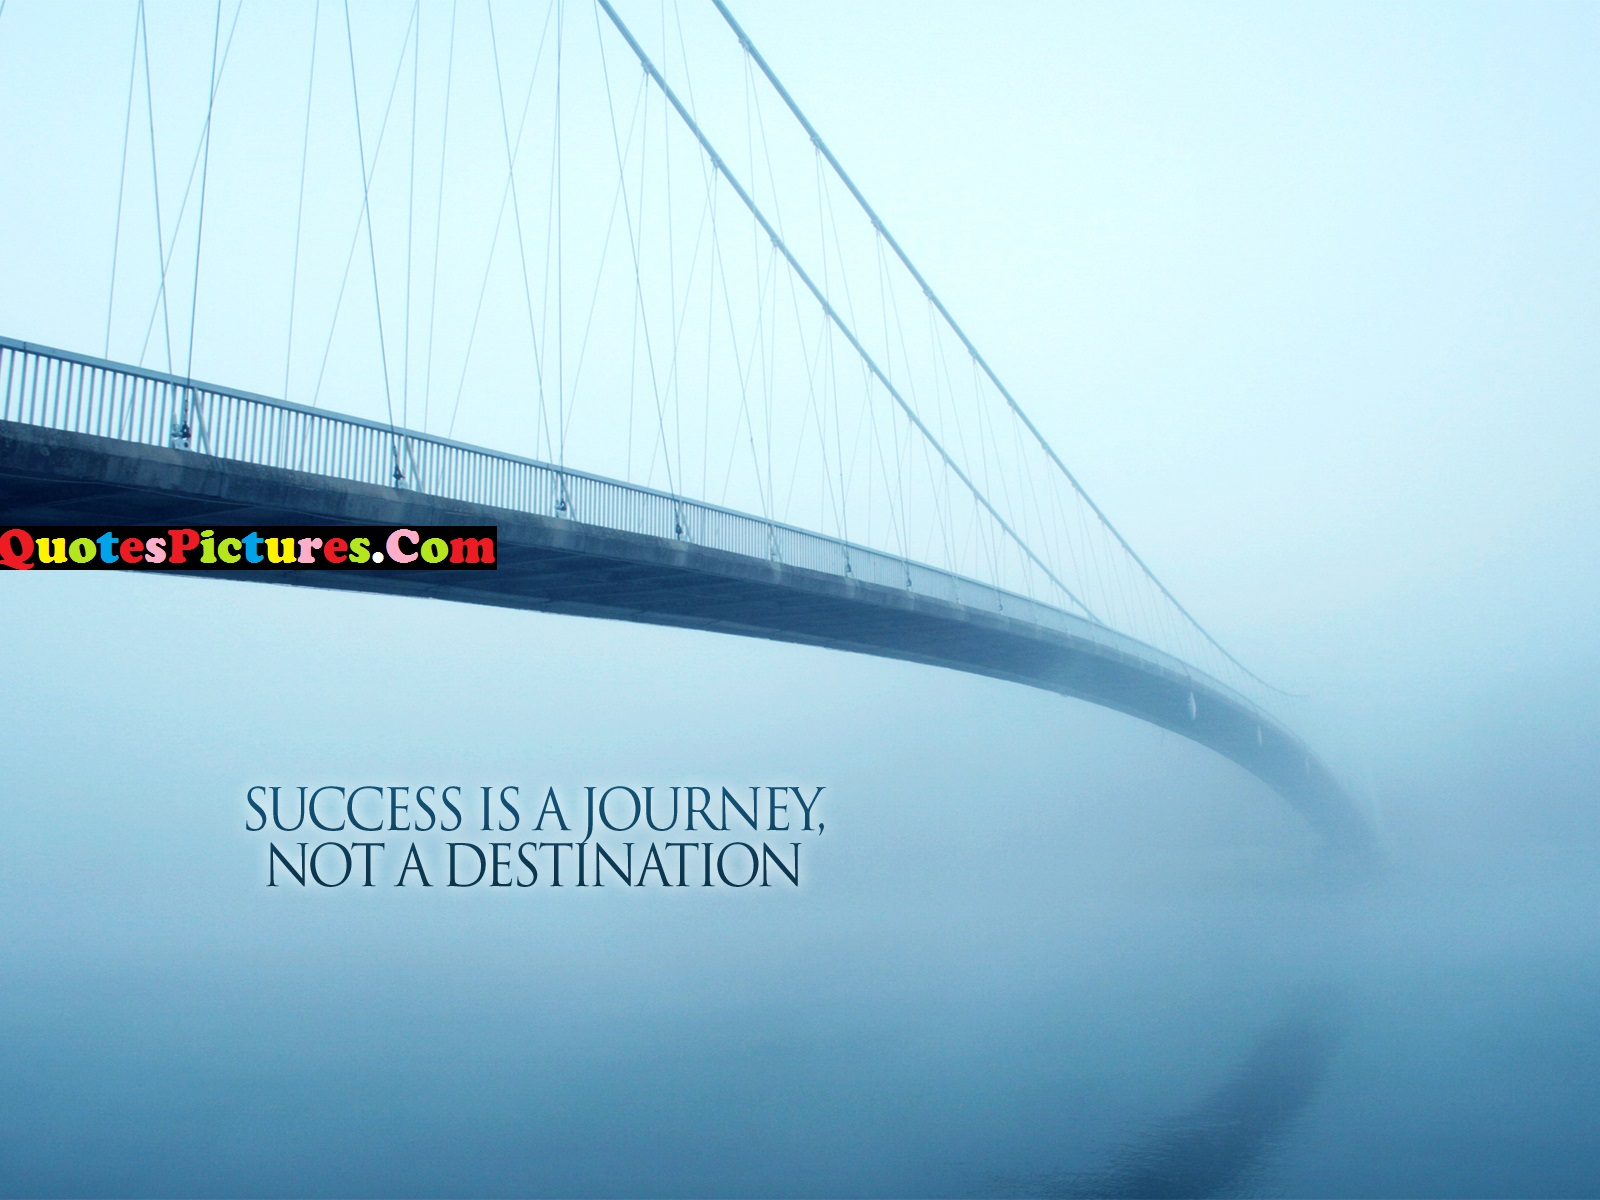 success-quotes16.jpg